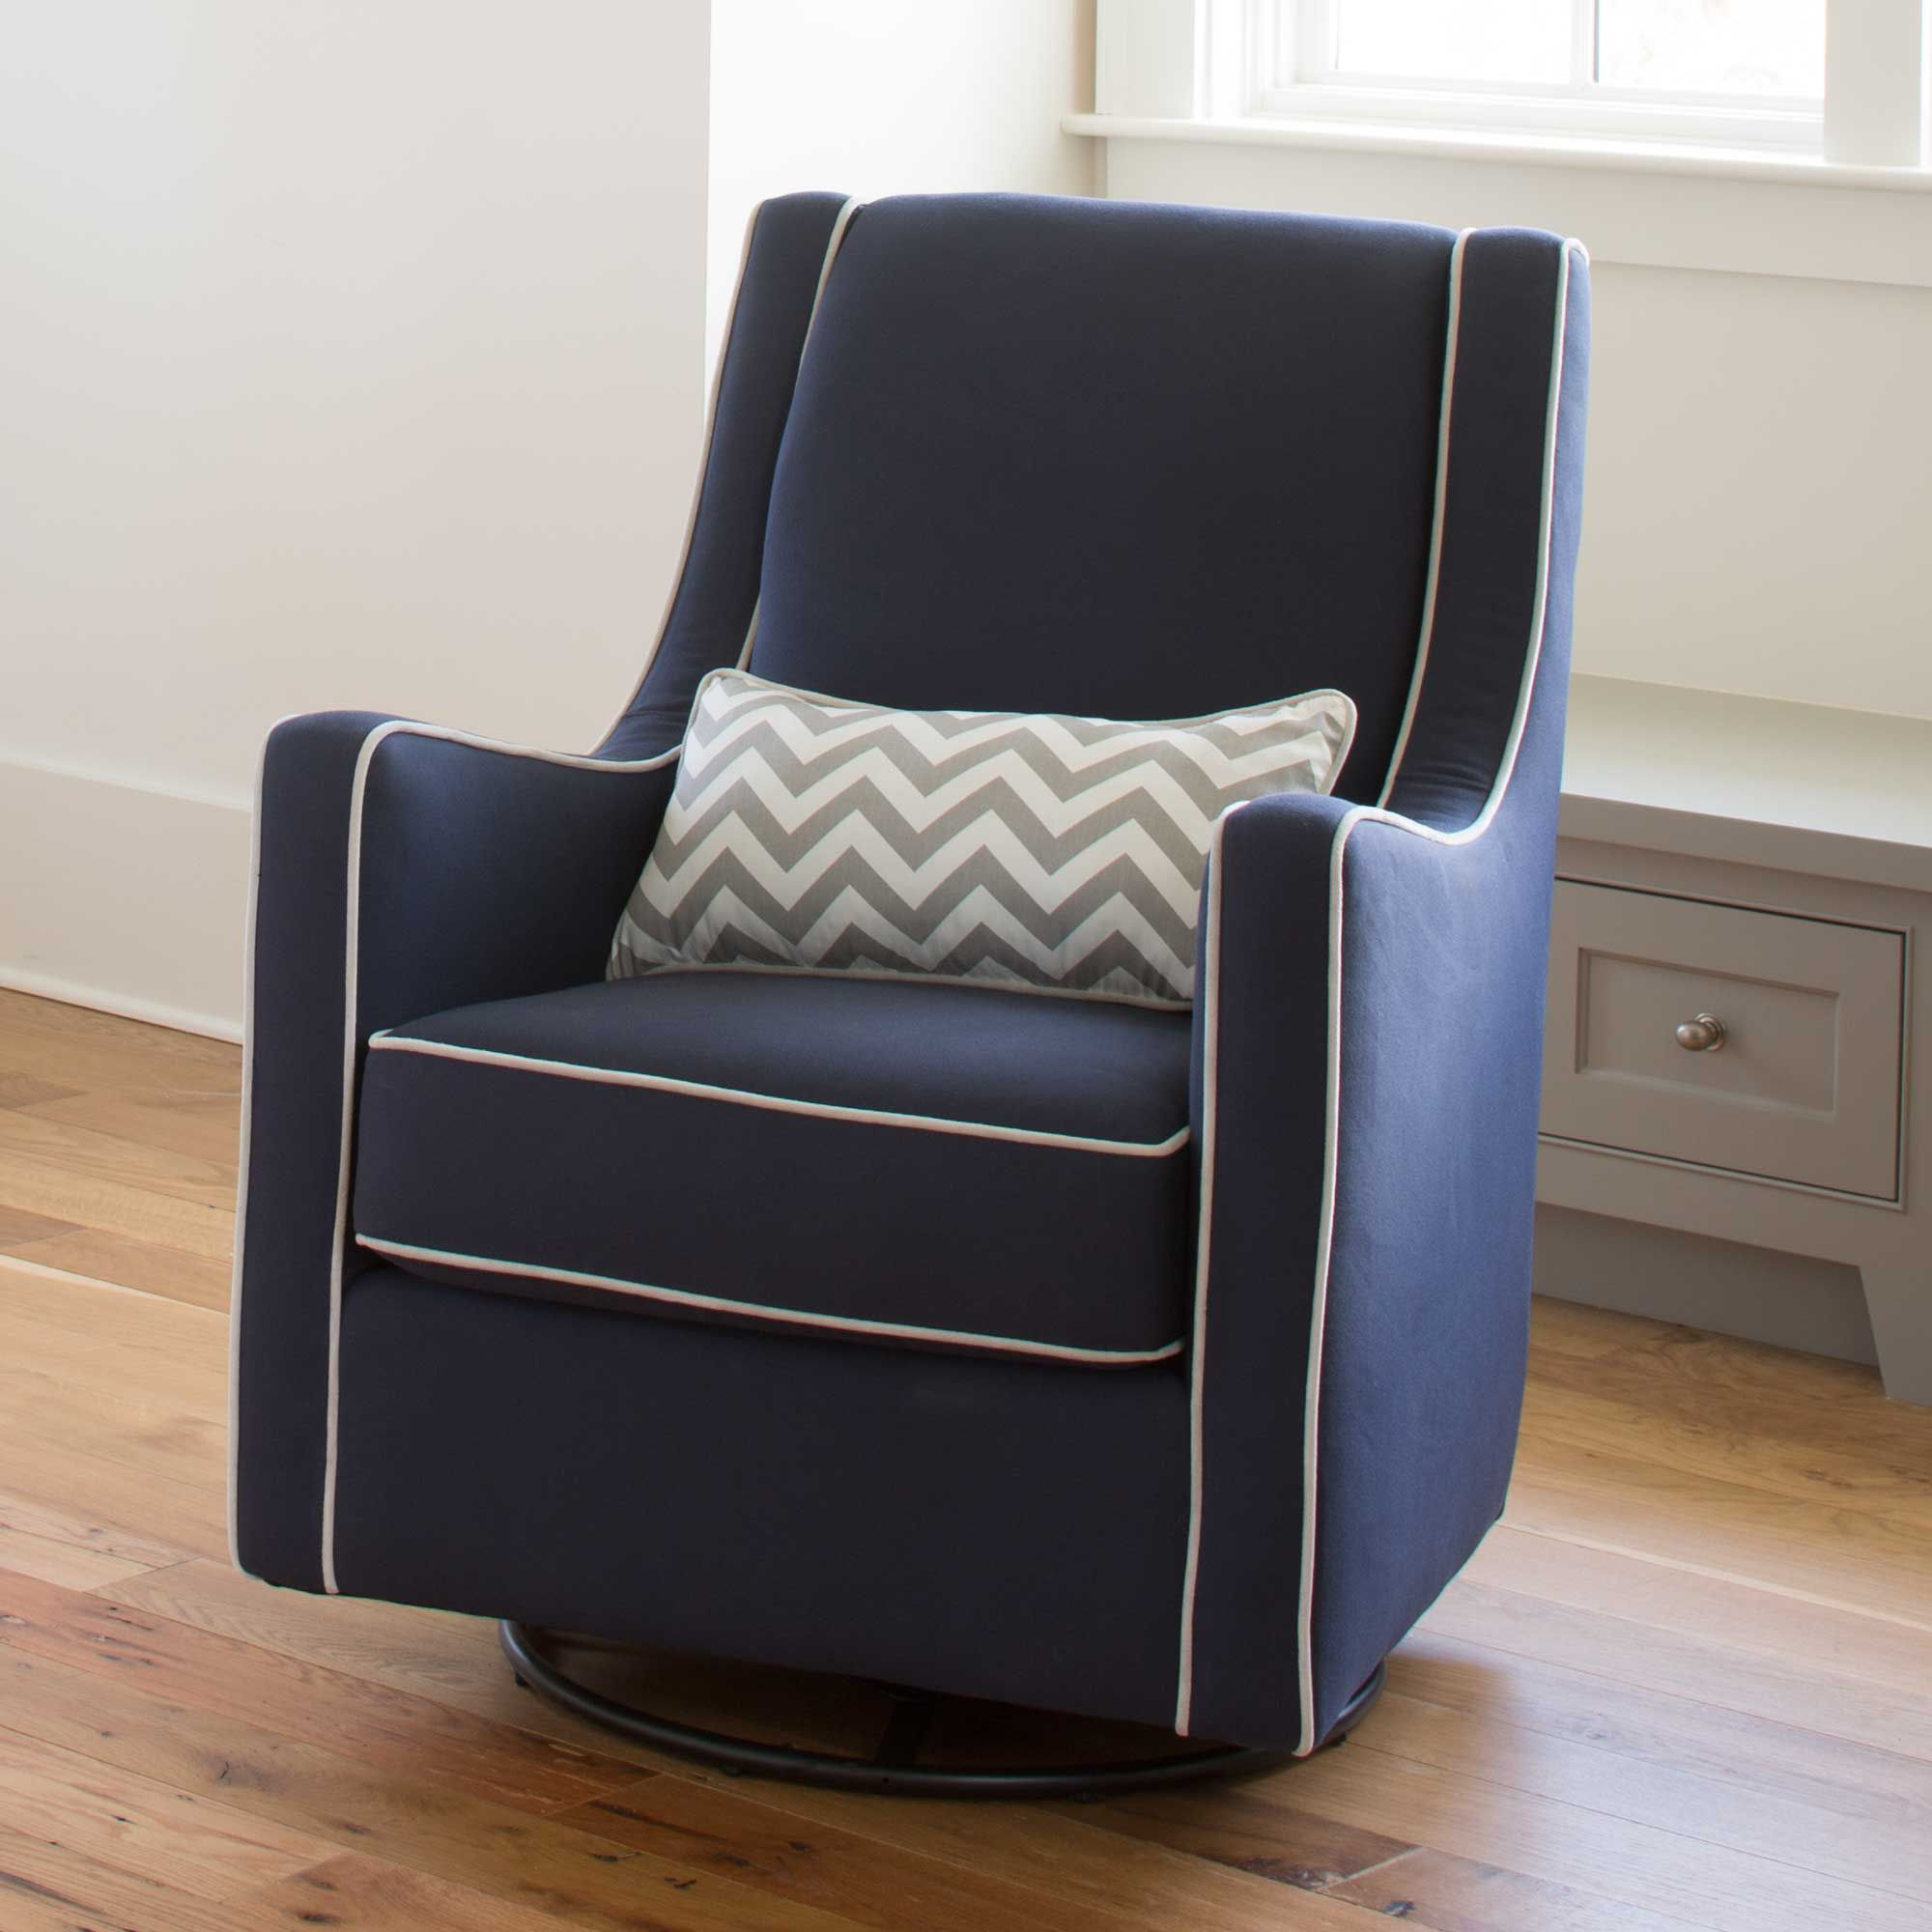 navy and gray modern glider with white and gray zig zag pillow  - navy and gray modern glider with white and gray zig zag pillow  carouseldesigns